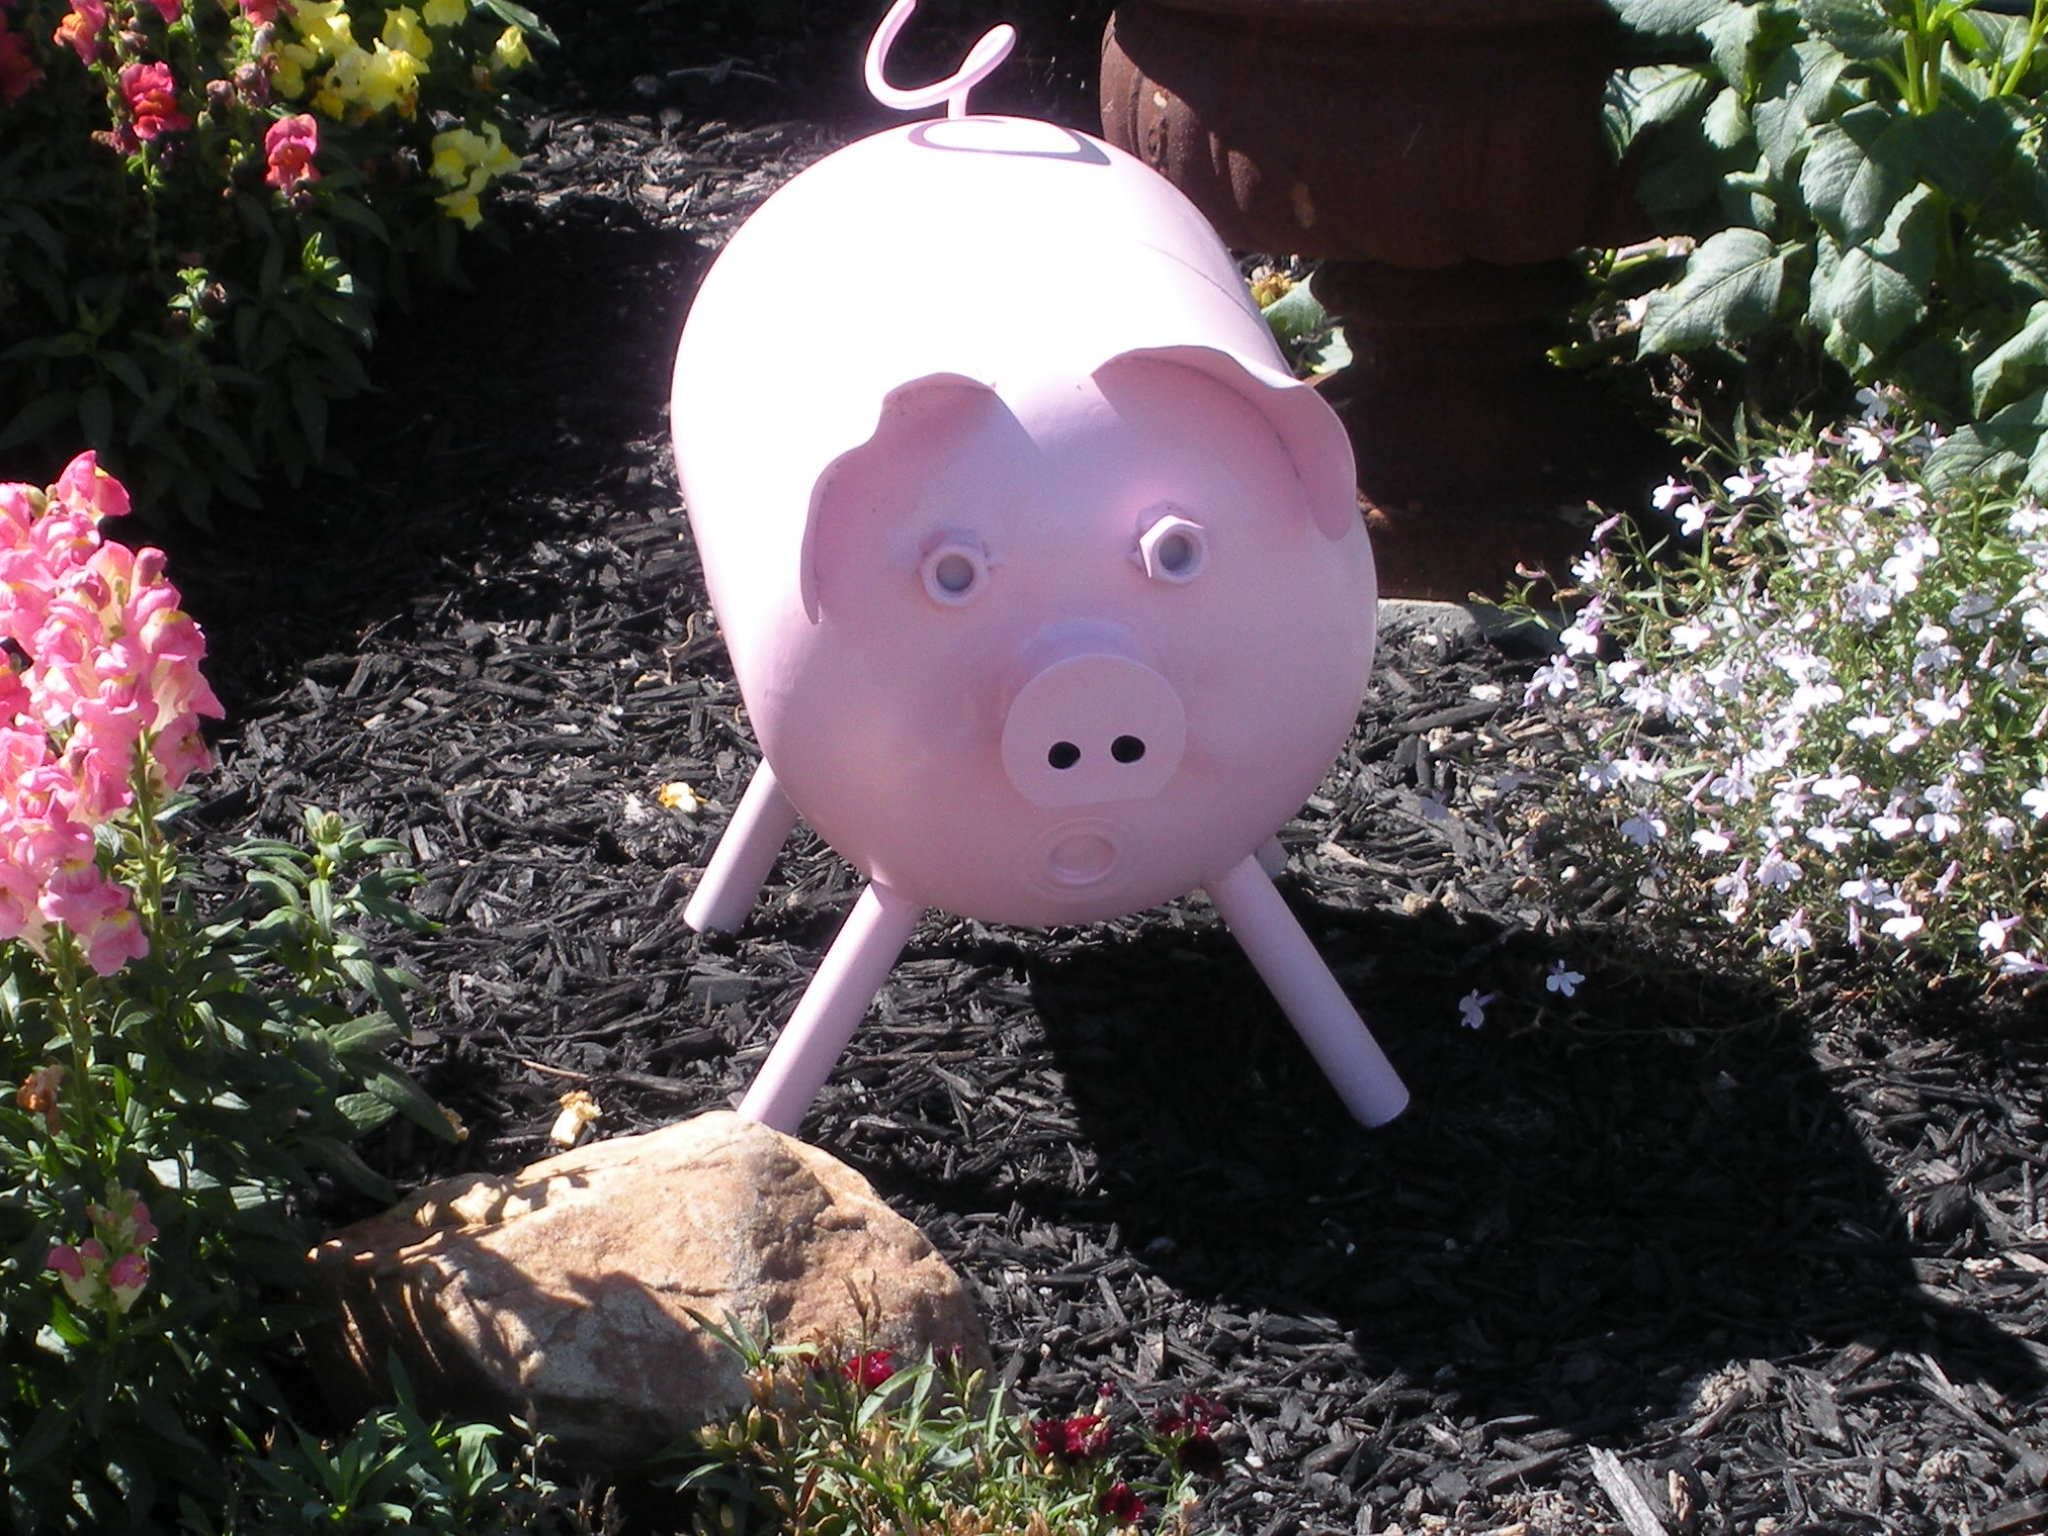 Pig lawn ornament - Pig Made From Empty Freon Tank